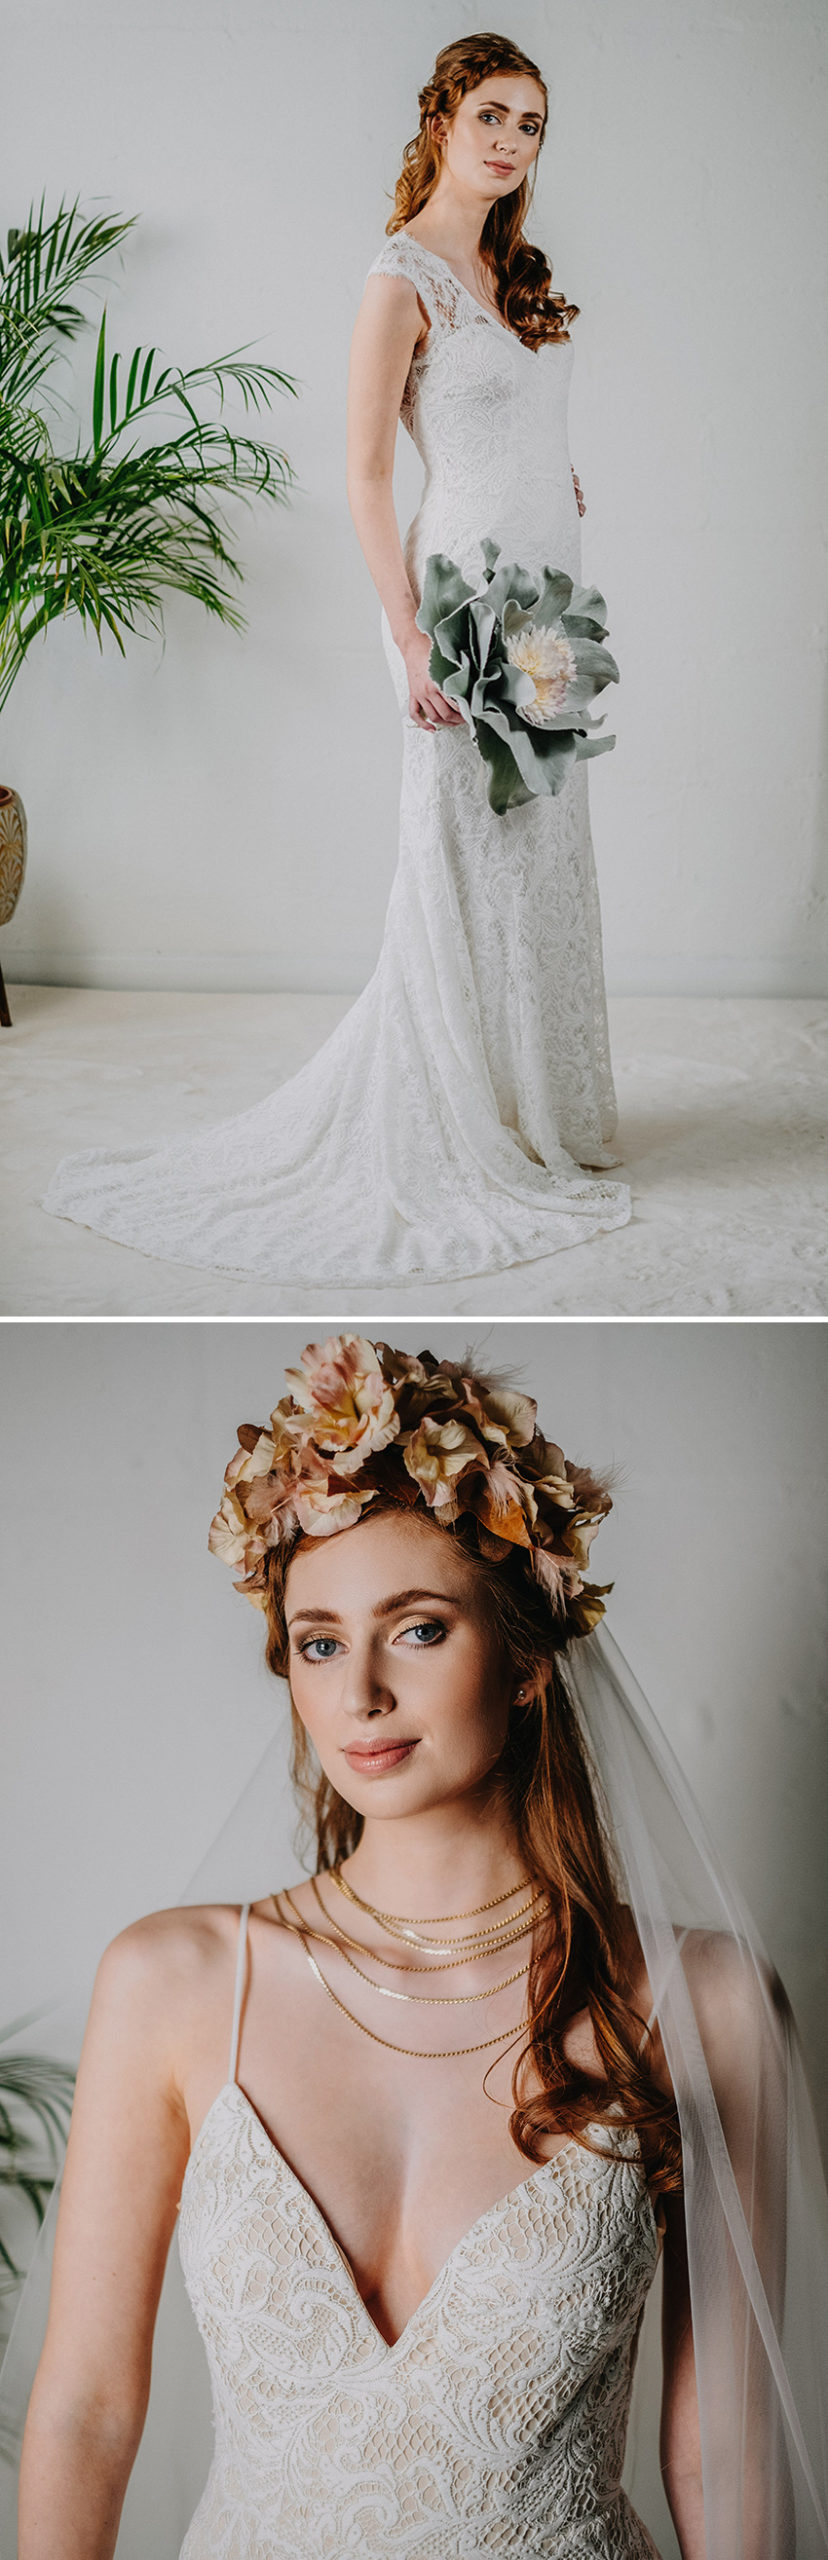 Fall wedding florals and autumn bouquets UK bride featured in Perfect Wedding Magazine